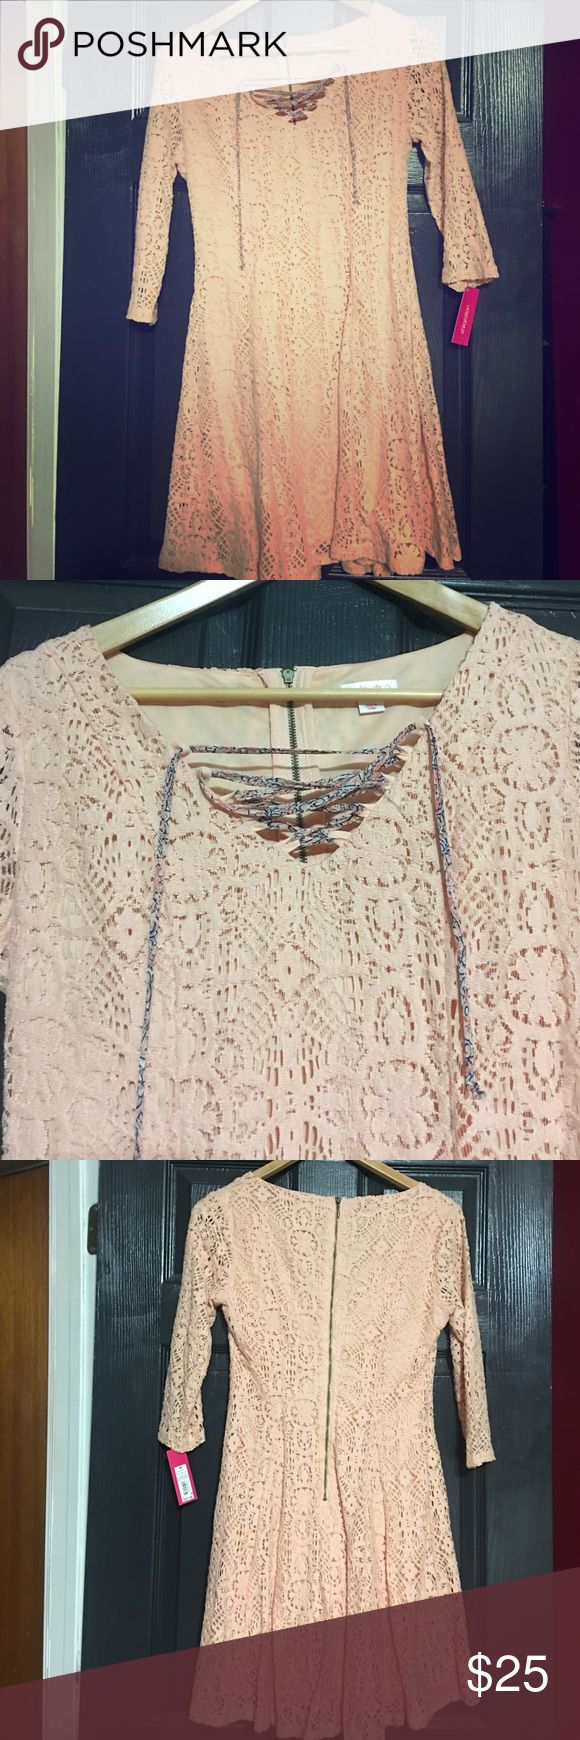 NWT peach lace dress From target. All over lace in a peachy color. Zipper in back. Floral string tie in front. Super cute! Size M. Xhilaration Dresses